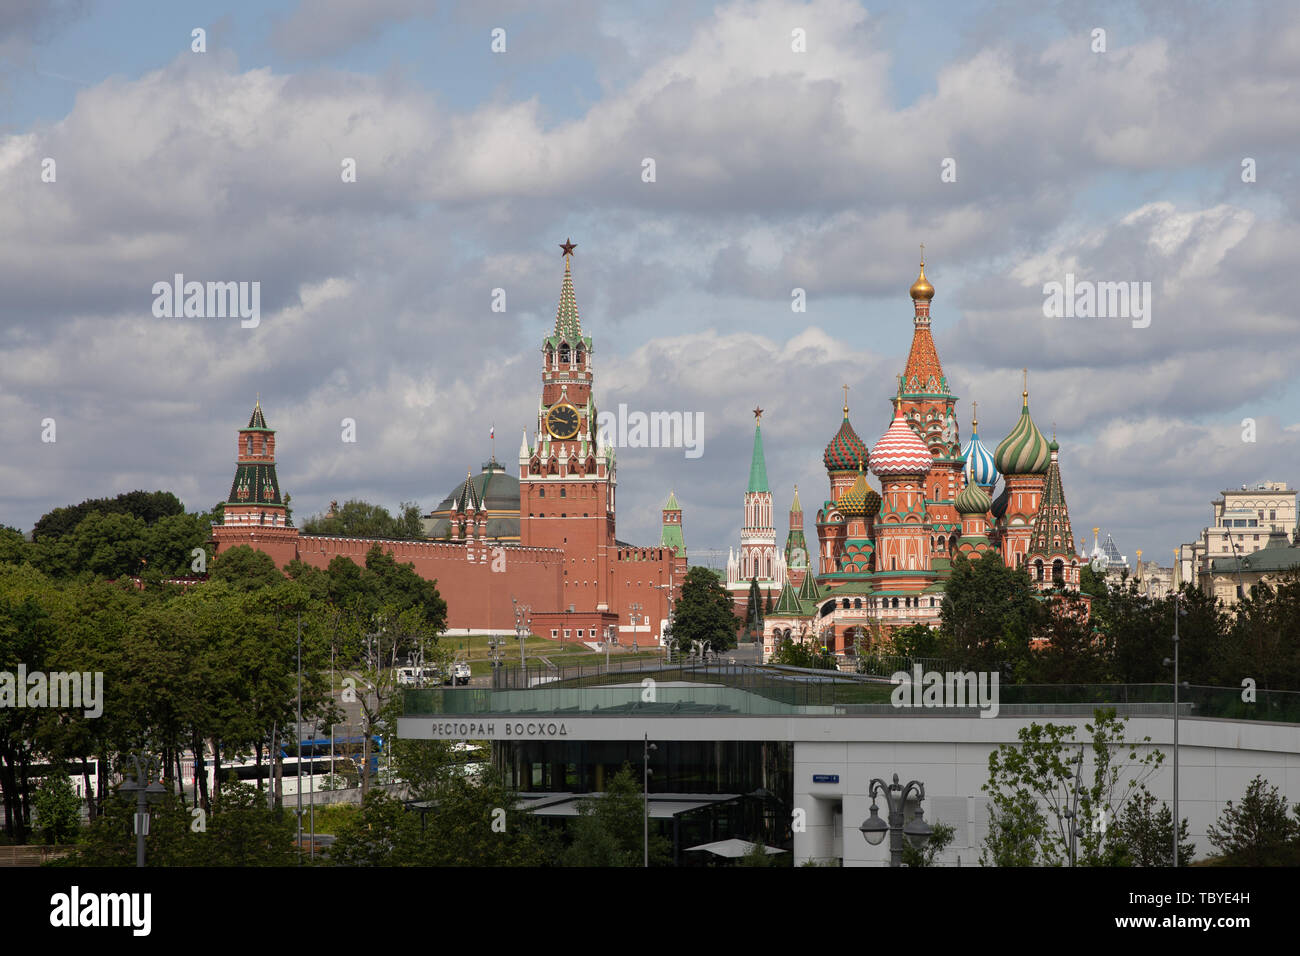 (190604) -- MOSCOW, June 4, 2019 (Xinhua) -- Photo taken on June 3, 2019 shows the Kremlin Palace (L) and the Saint Basil's Cathedral in Moscow, capital of Russia. Chinese President Xi Jinping will pay a state visit to Russia from June 5 to 7 at the invitation of Russian President Vladimir Putin, a Chinese Foreign Ministry spokesperson announced on Wednesday at a press briefing.     Xi will also attend the 23rd St. Petersburg International Economic Forum during his stay, according to spokesperson Lu Kang. (Xinhua/Bai Xueqi) - Stock Image